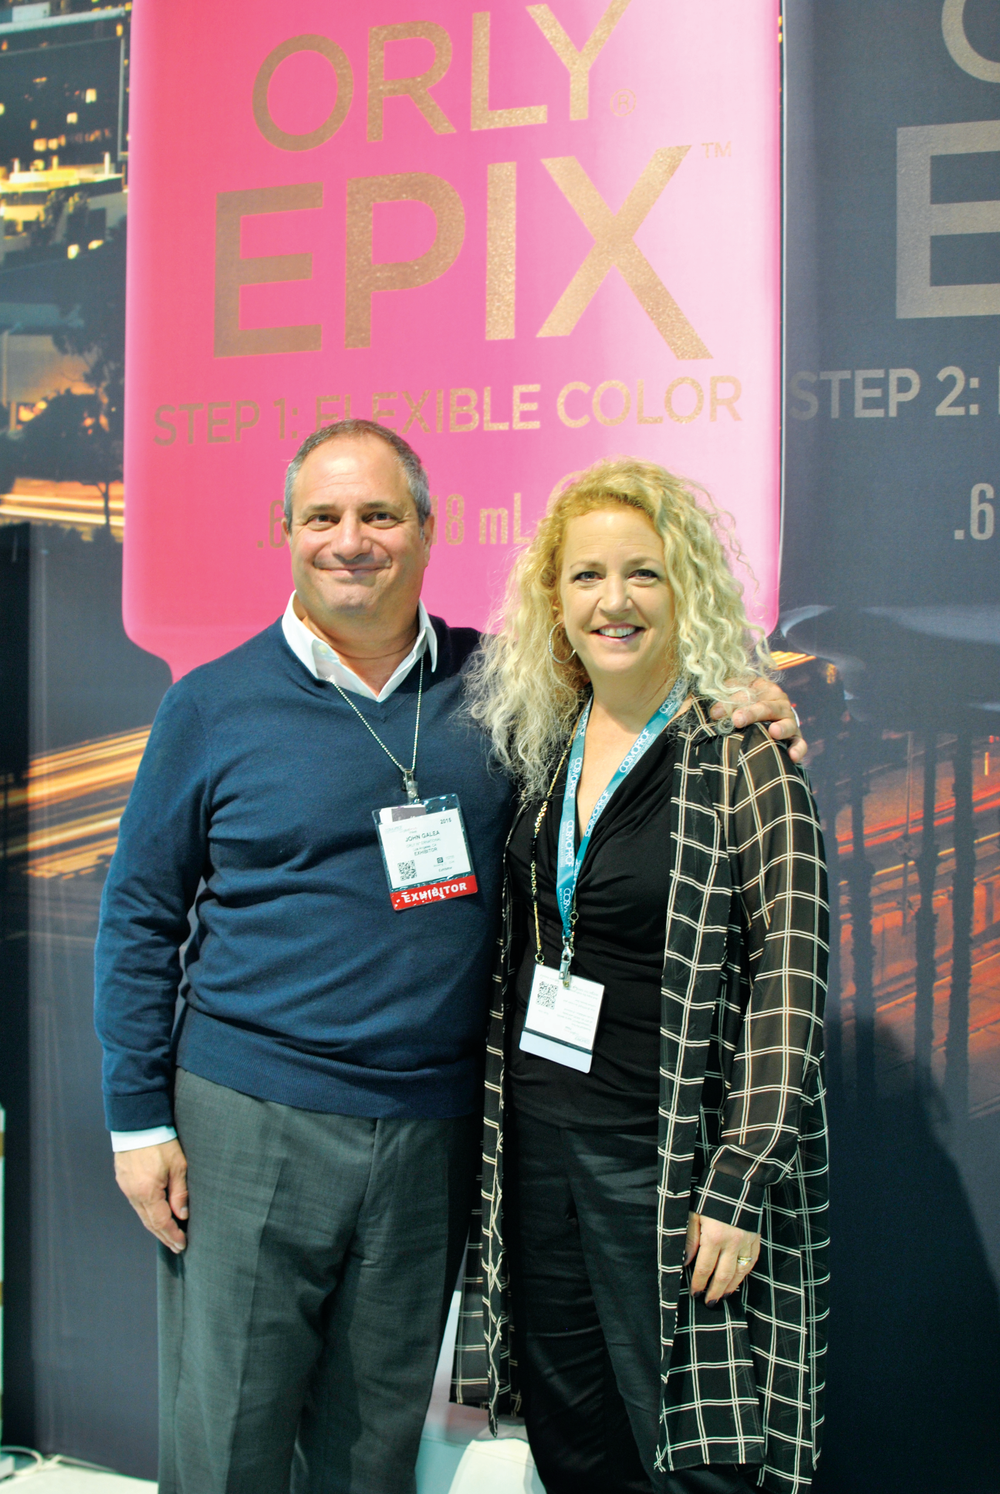 <p>Orly&rsquo;s John Galea and Erika Kotite are dwarfed by the company&rsquo;s Epix backdrop. The company is celebrating its 40th year with some great new products and events.</p>